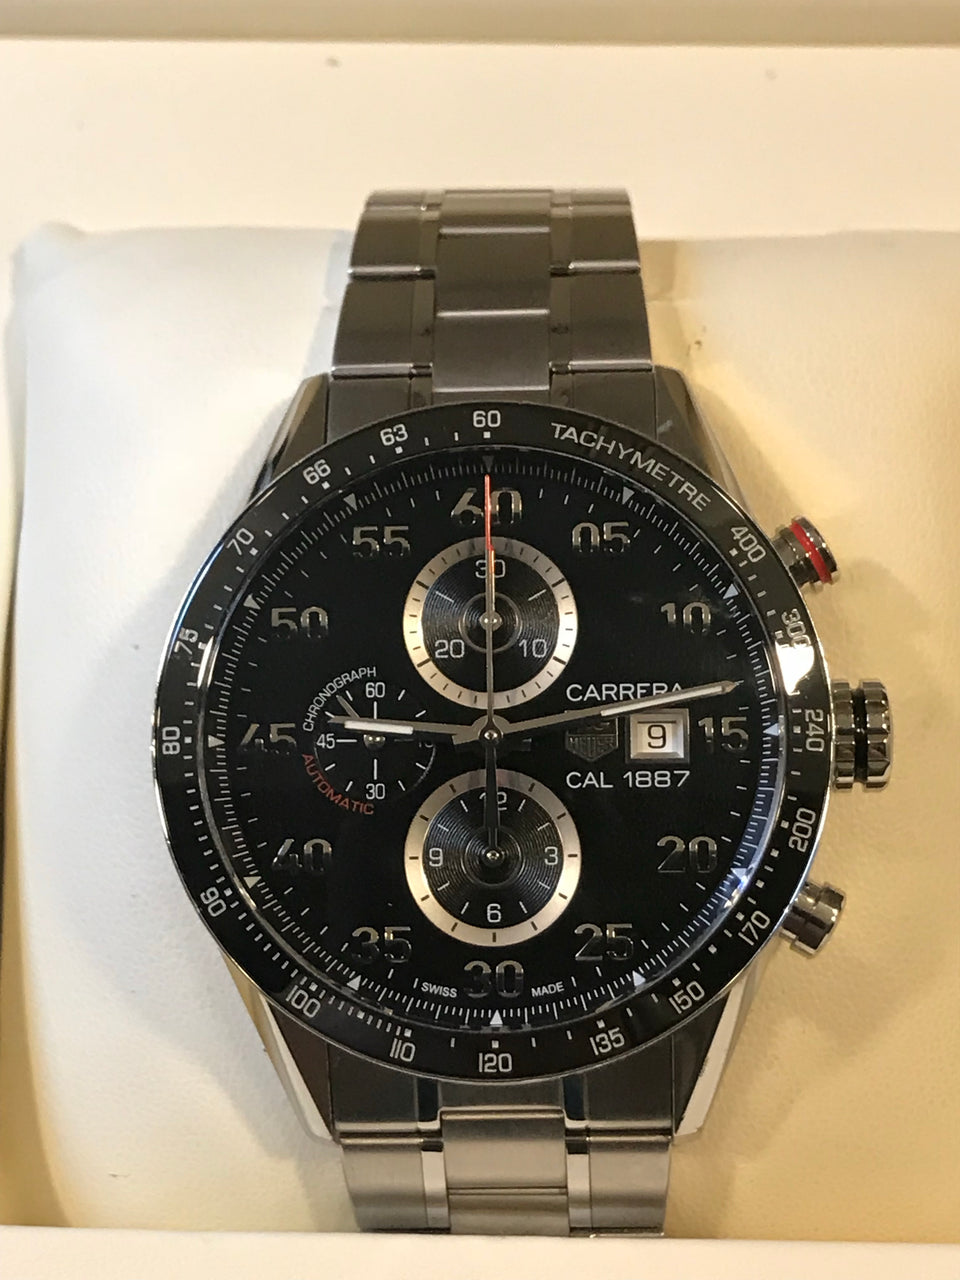 Tag Heuer Carrera 1887 Ceramic 43mm, Complete Set